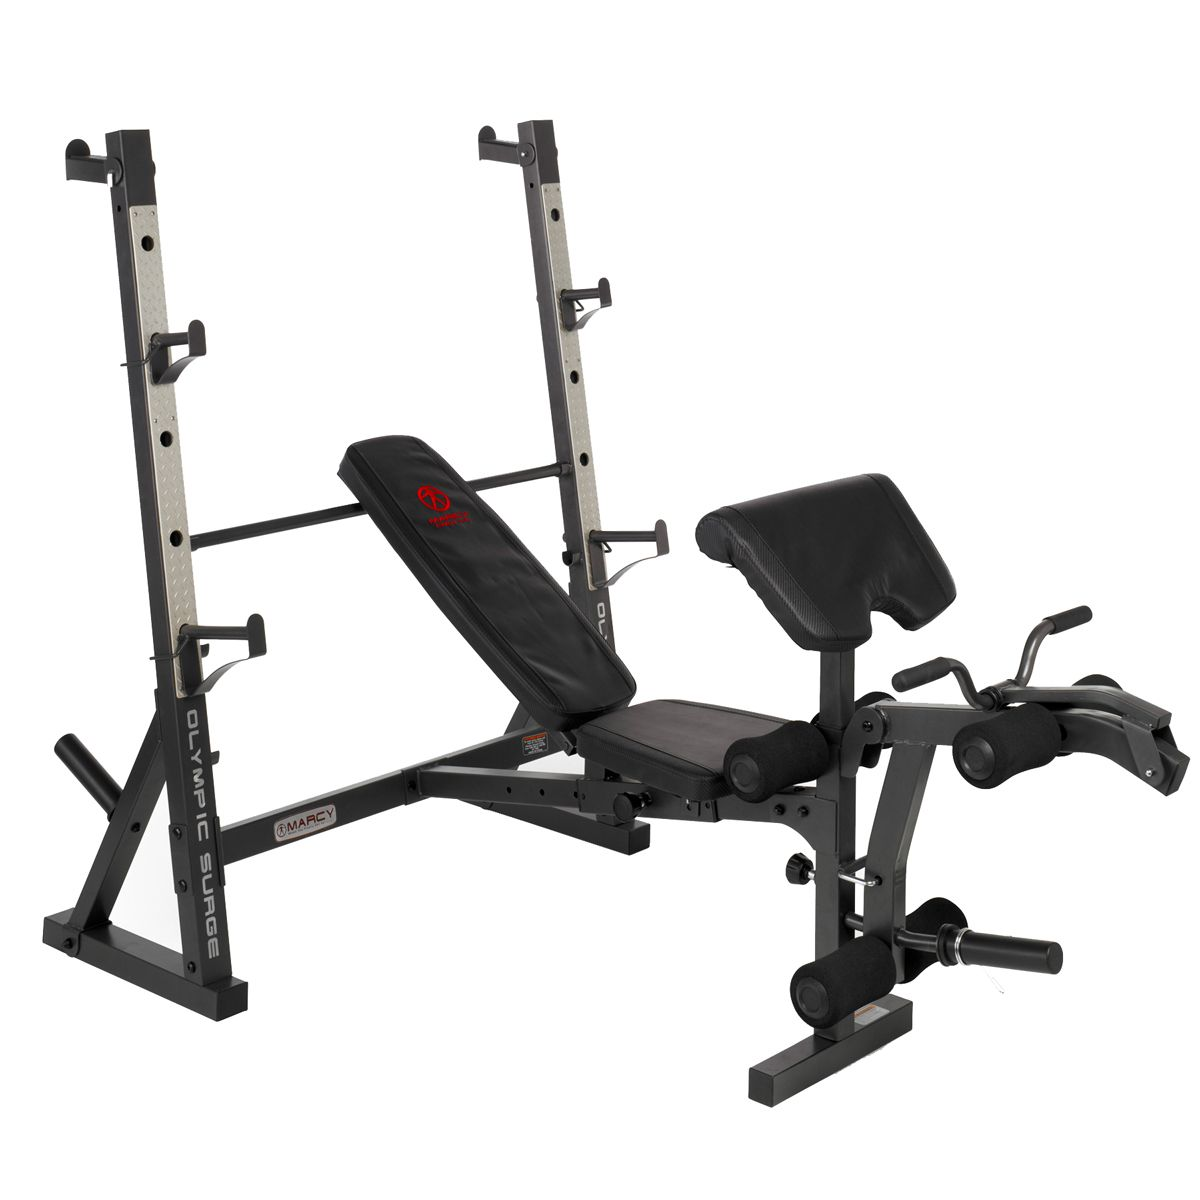 Buy Cheap Marcy Weight Bench Compare Weight Training Prices For Best Uk Deals